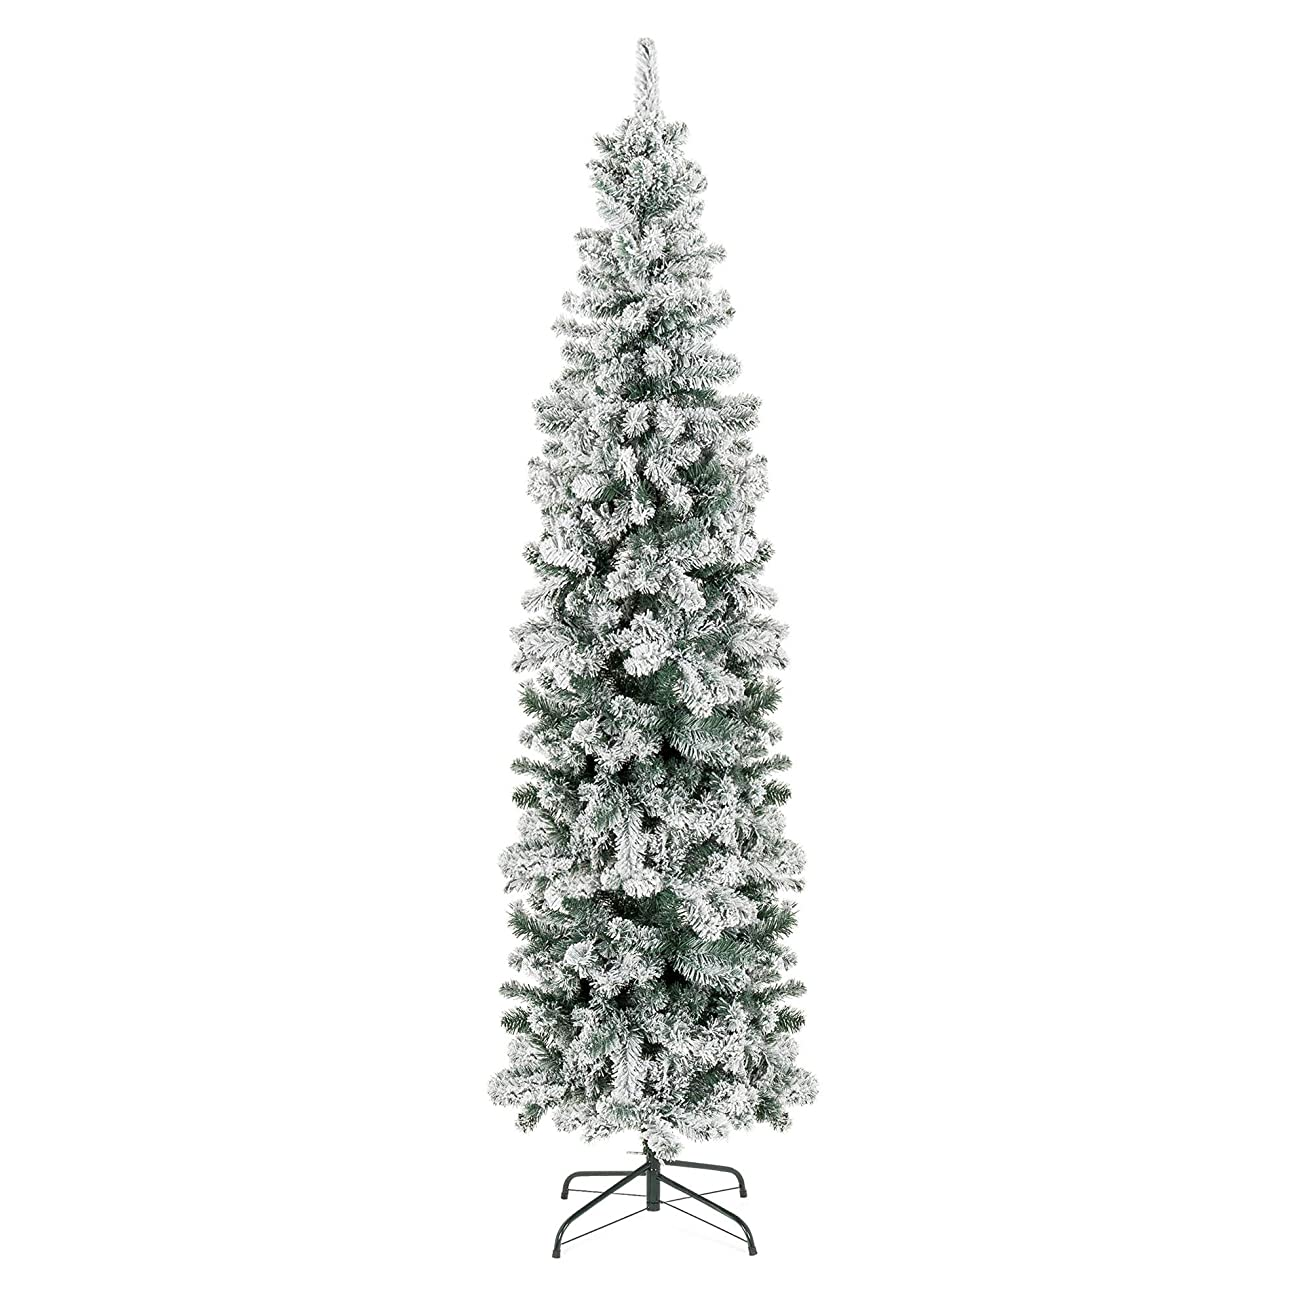 Best Choice Products 7.5ft Snow Flocked Artificial Pencil Christmas Tree Holiday Decoration w/Metal Stand - Green